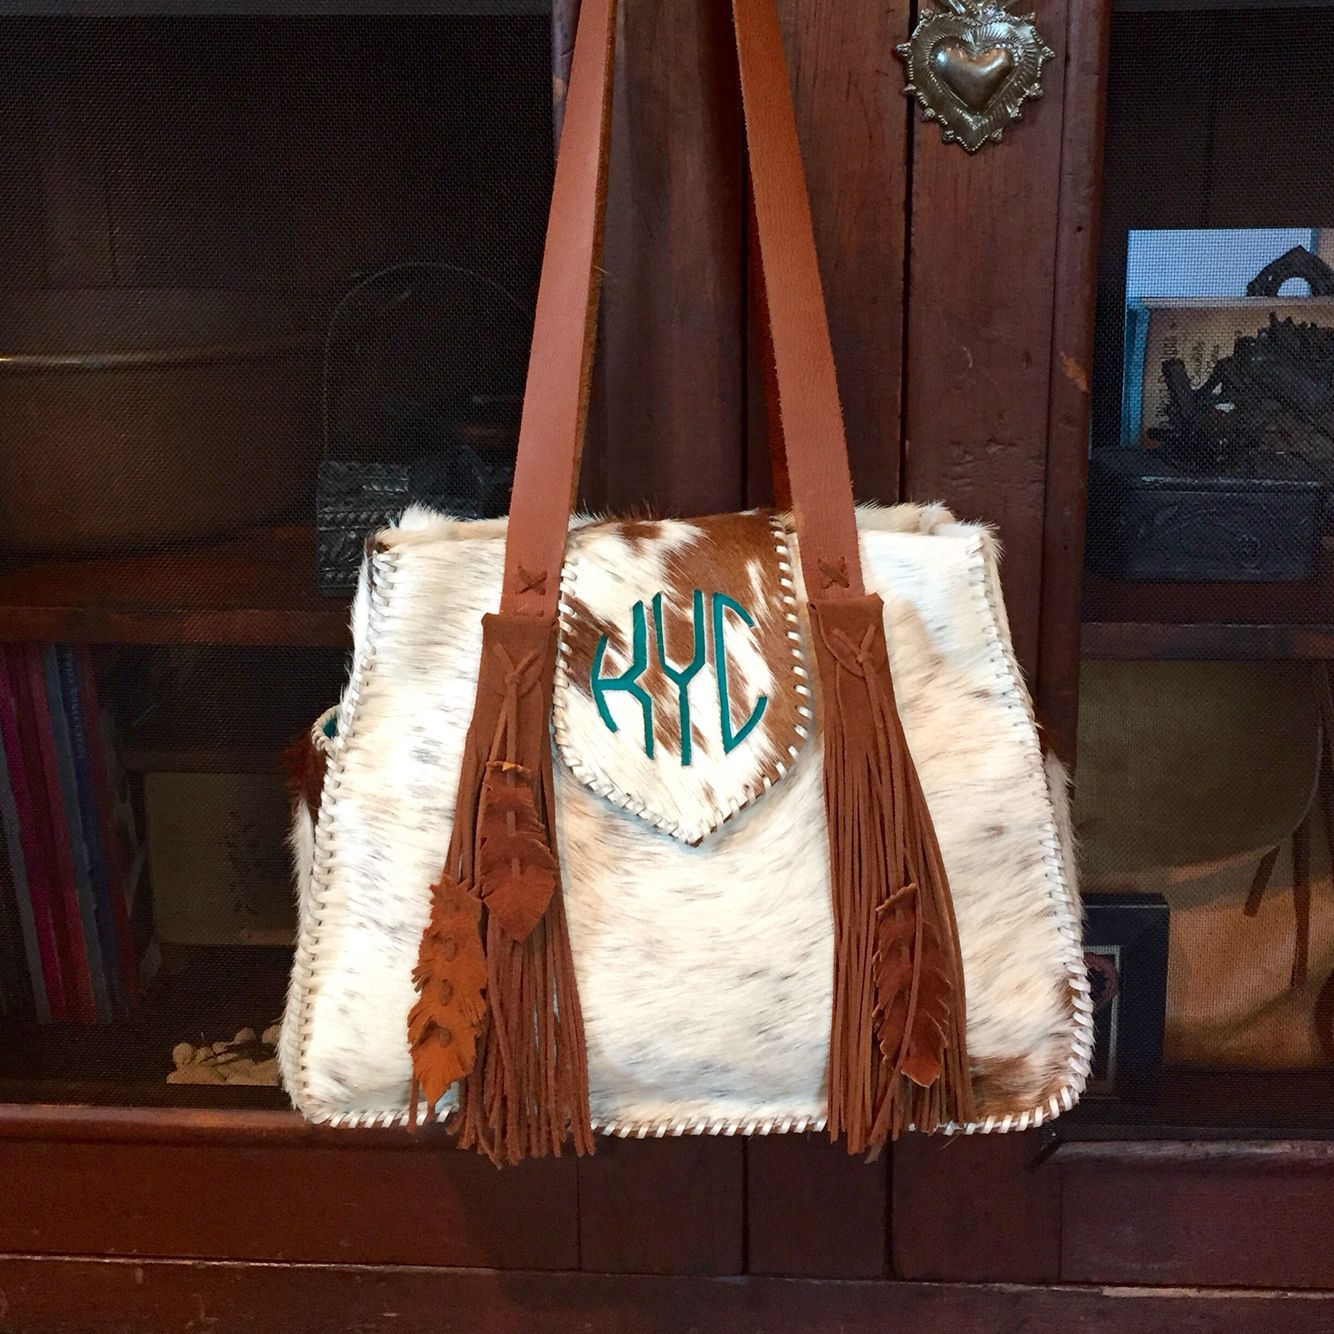 An off-white cowhide Bonnie Bag with the customer's circle monogram in turquoise suede, and deerskin feathers on the fringe. From gowestdesigns.us